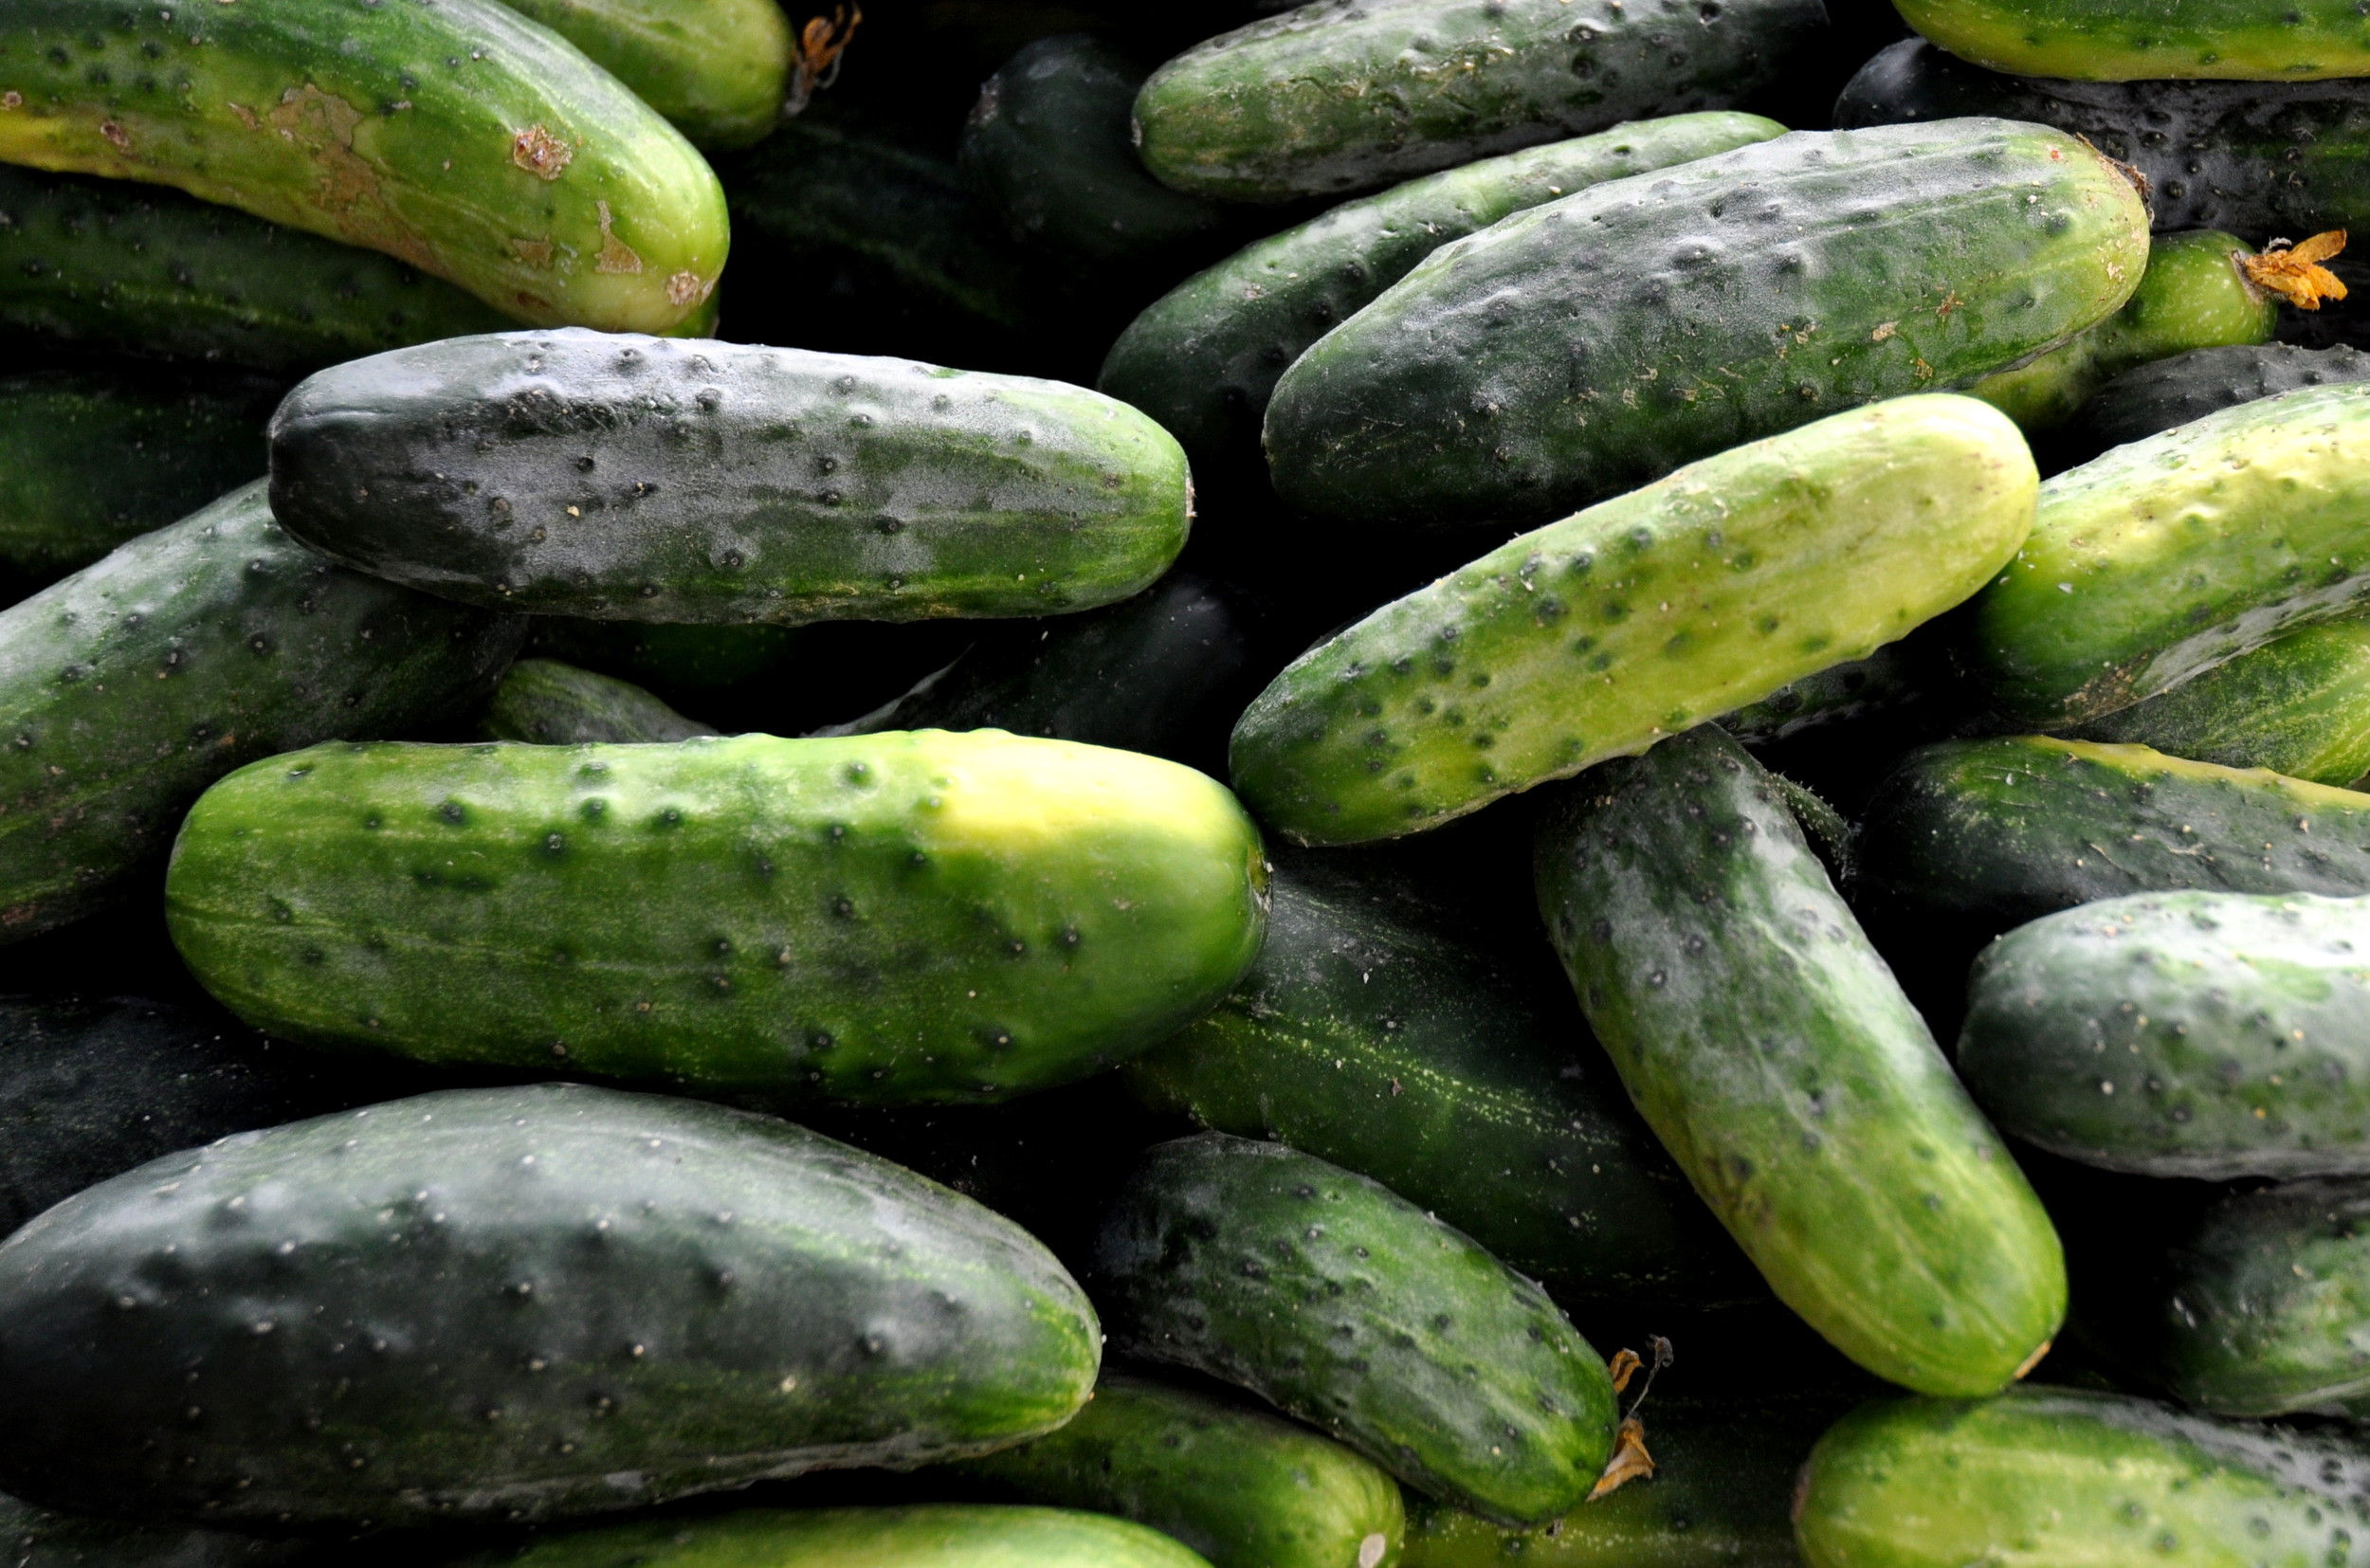 Pickling cucumbers from Alvarez Organic Farms. Photo copyright 2013 by Zachary D. Lyons.